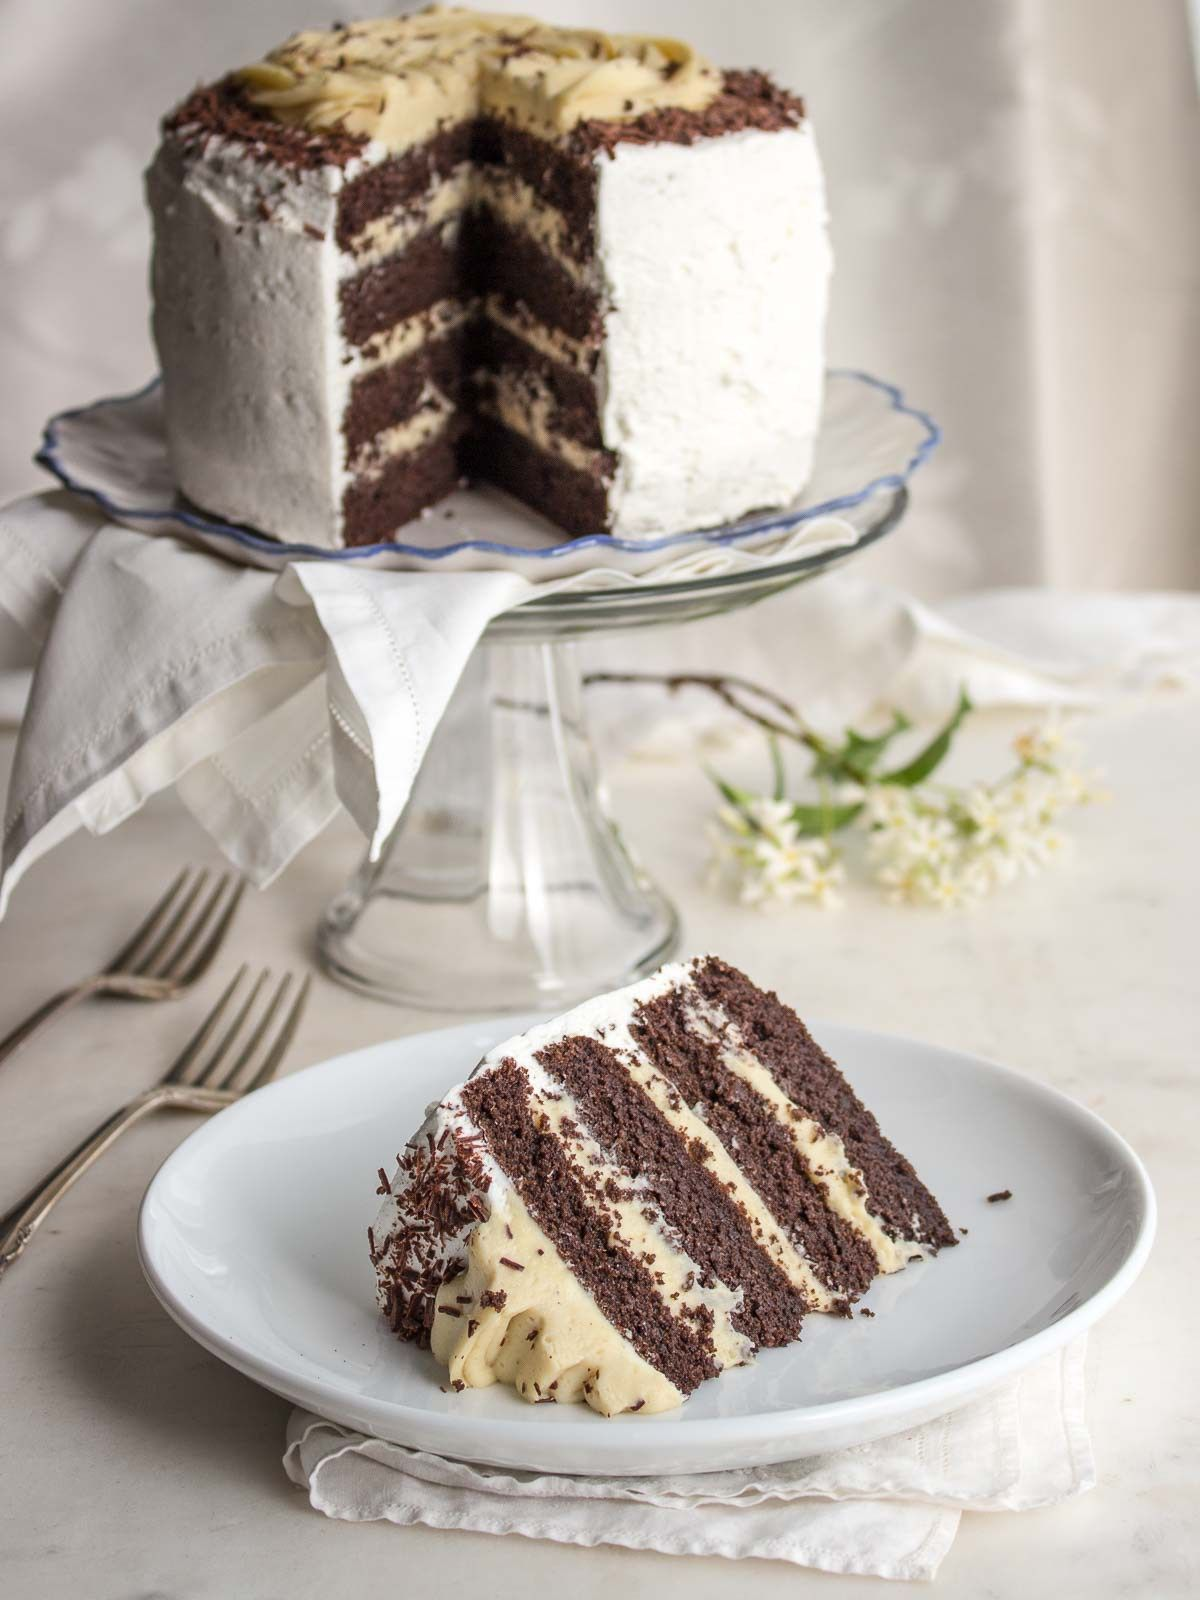 This Low Carb Chocolate Birthday Cake Boasts A Moist Sugar Free Pudding And Vanilla Whipped Cream Frosting